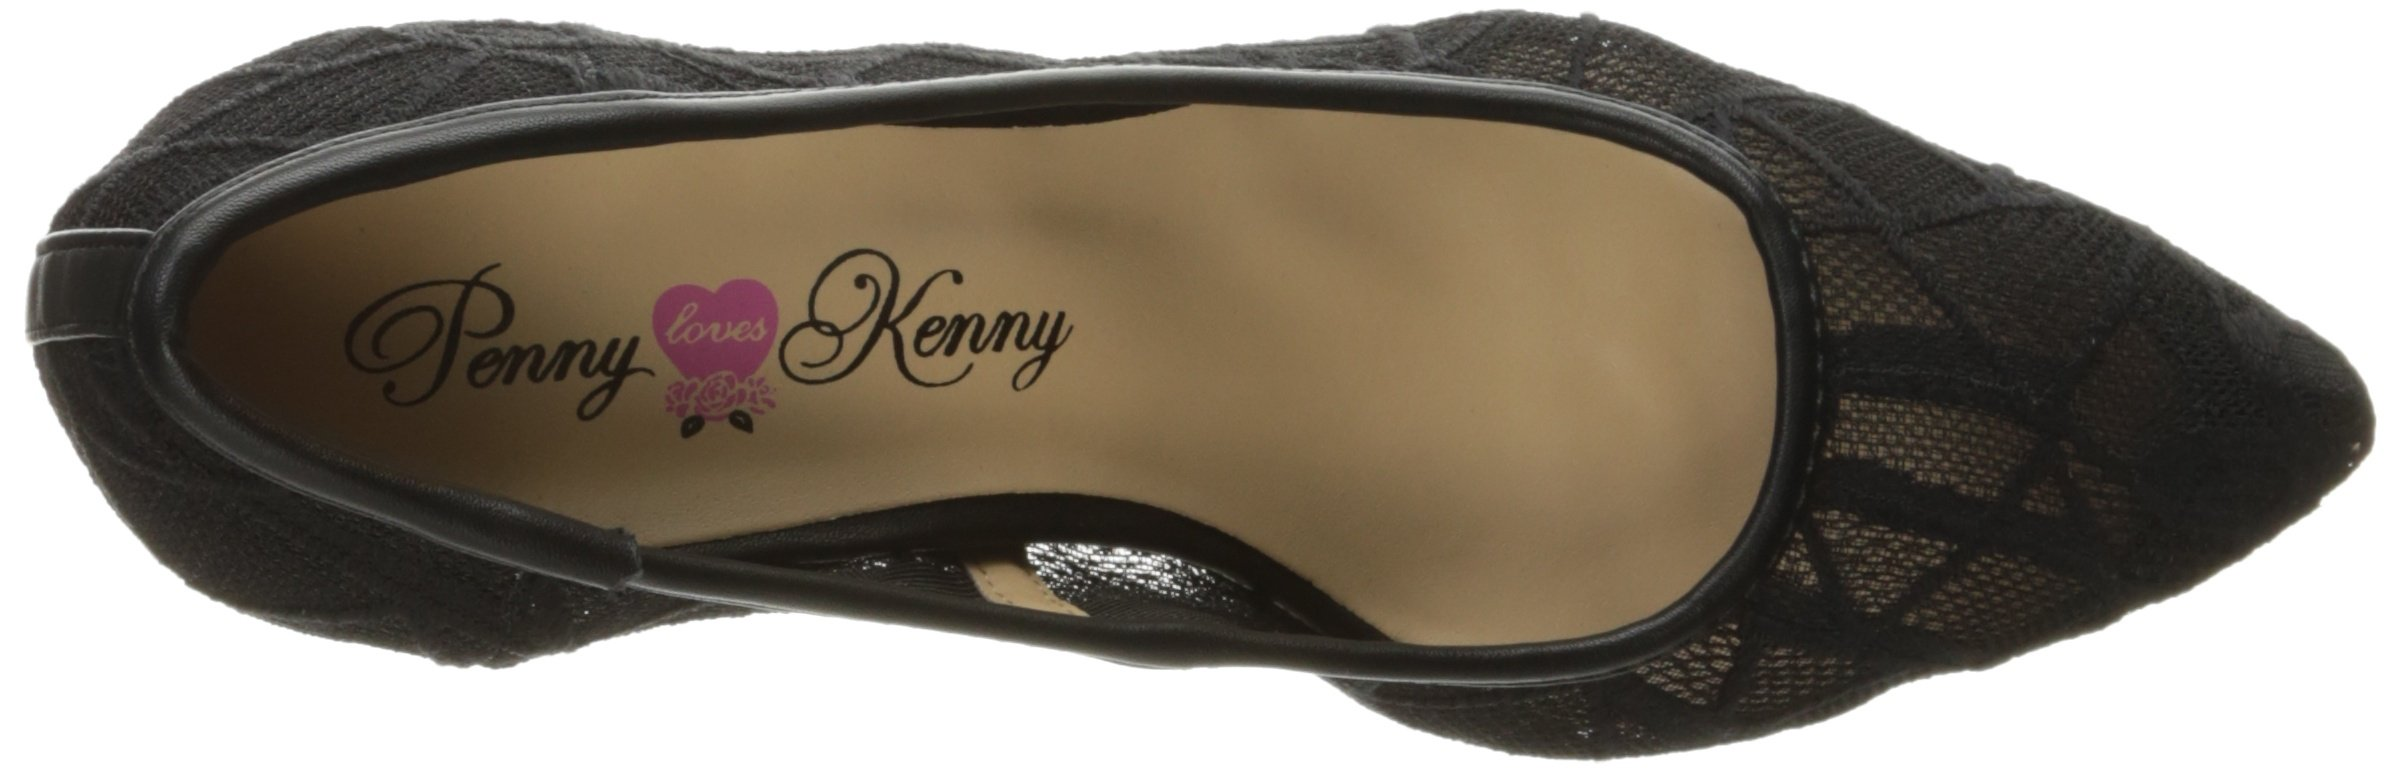 Penny Loves Kenny Women's Union Dress Pump, Black, 7.5 M US by Penny Loves Kenny (Image #8)